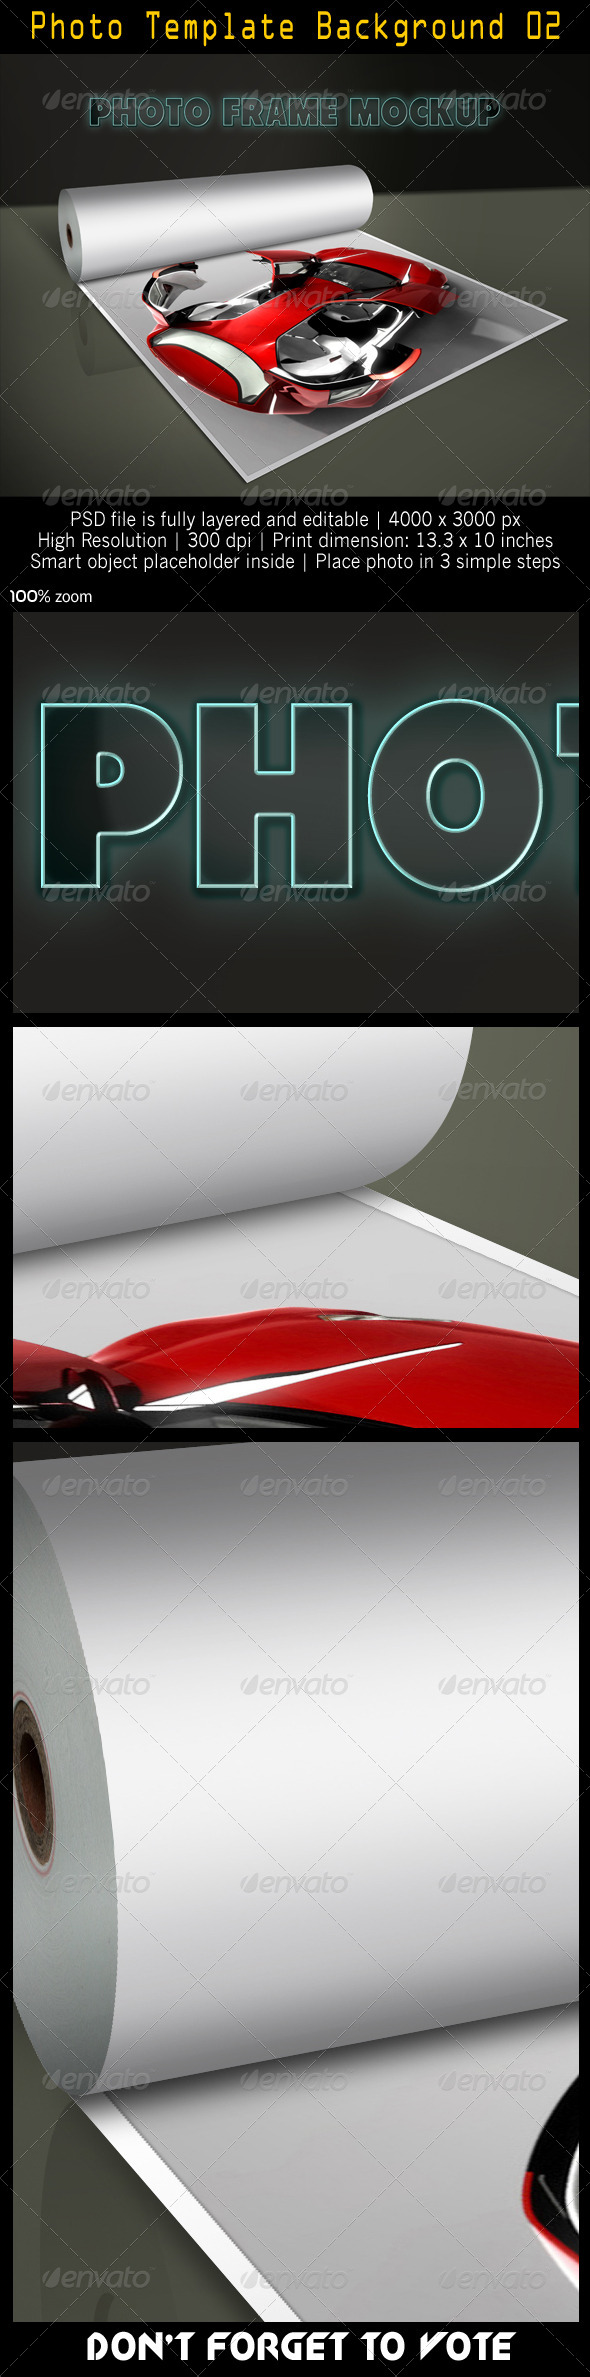 Photo Template Background 02 - Artistic Photo Templates